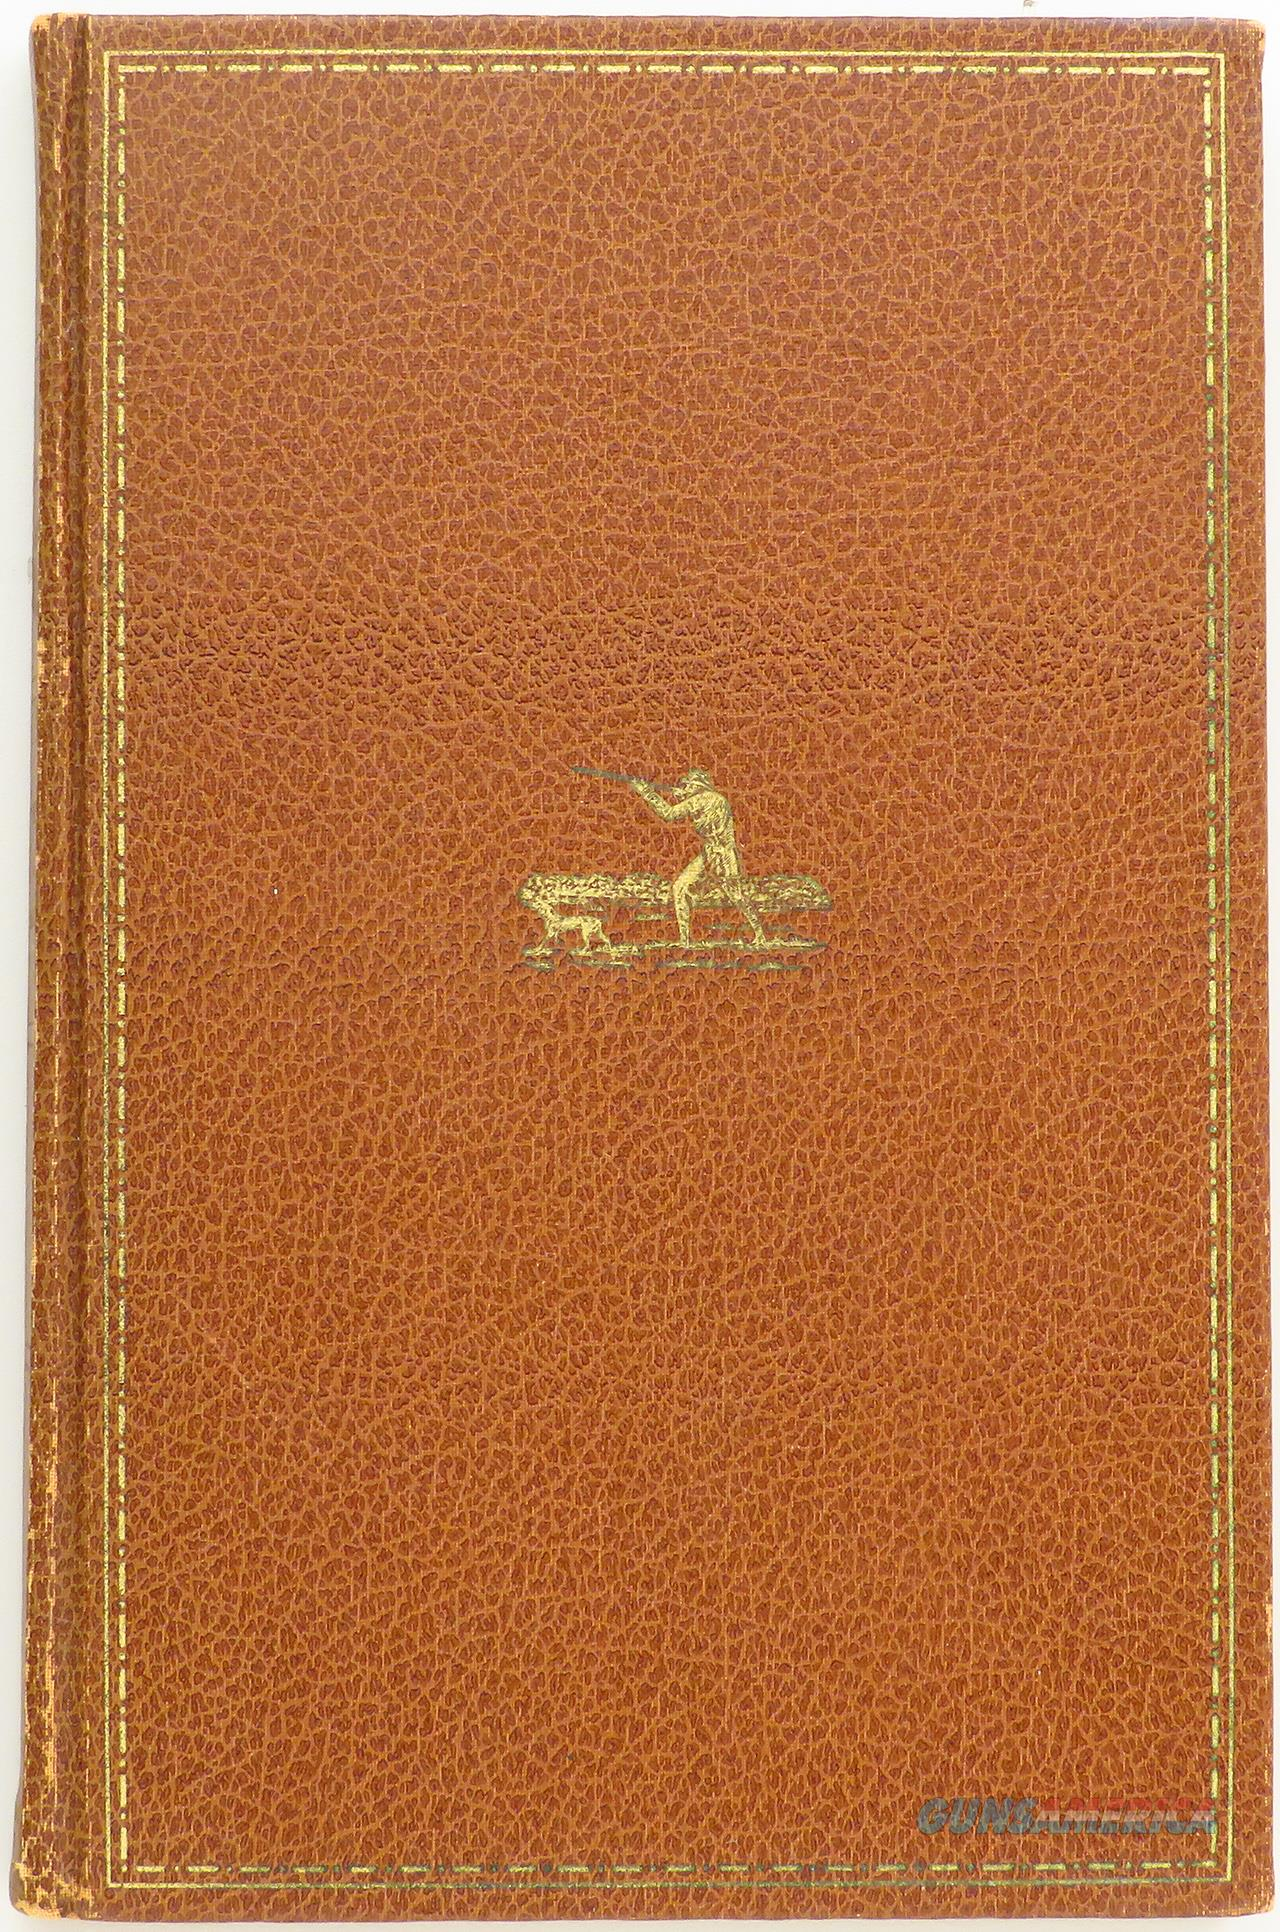 Derrydale Press, Falling Leaves by Philip Babcock, 745/950, 1937  Non-Guns > Books & Magazines